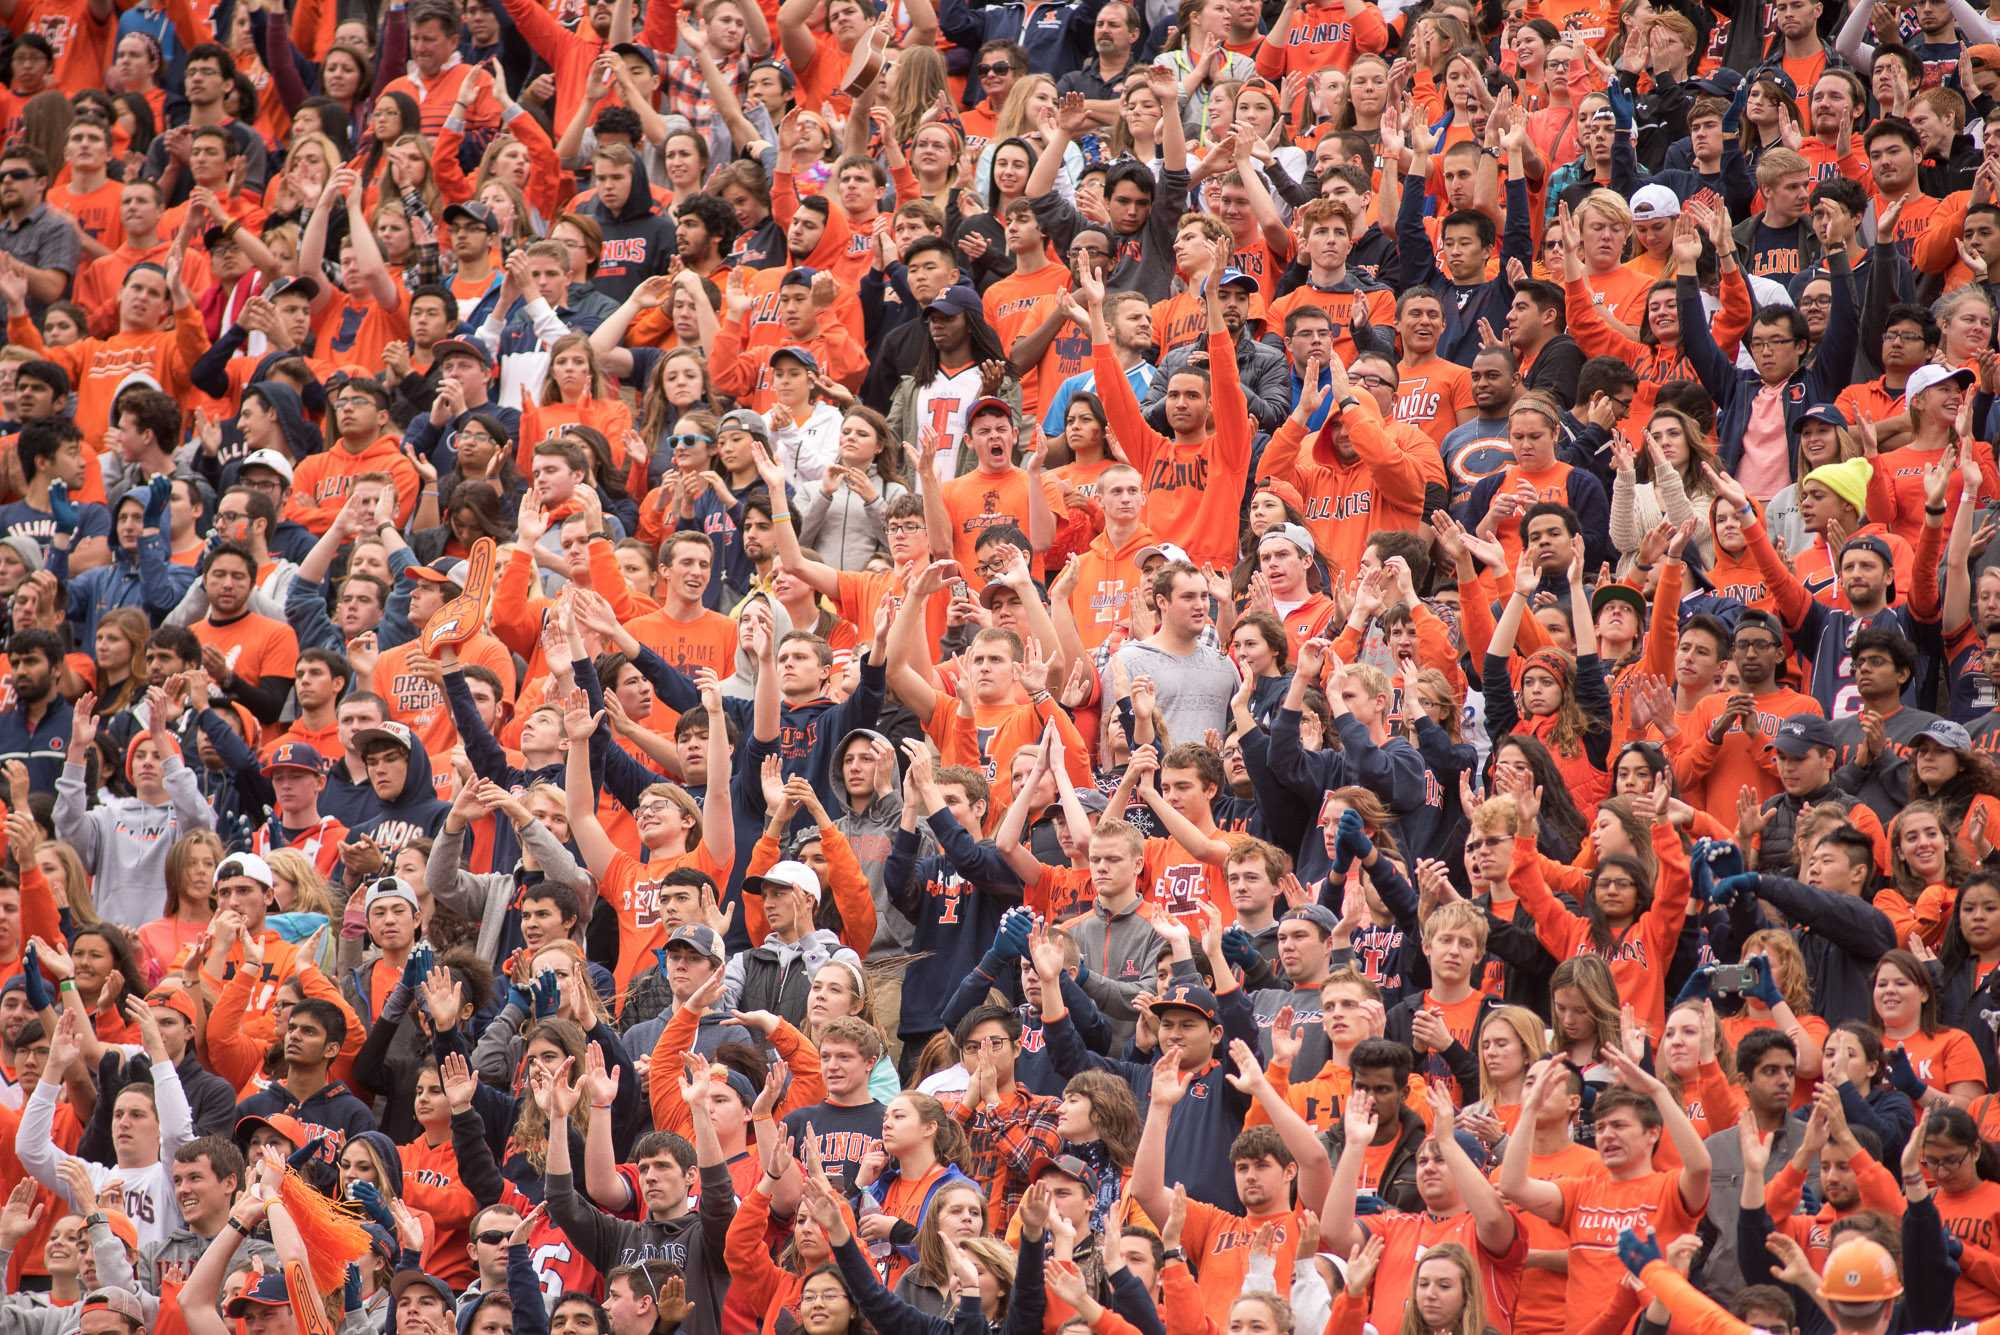 Illinois' student cheering section, Block I, claps and chants during the Homecoming game against Wisconsin at Memorial Stadium on Saturday, October 24. Illinois lost 13-24.